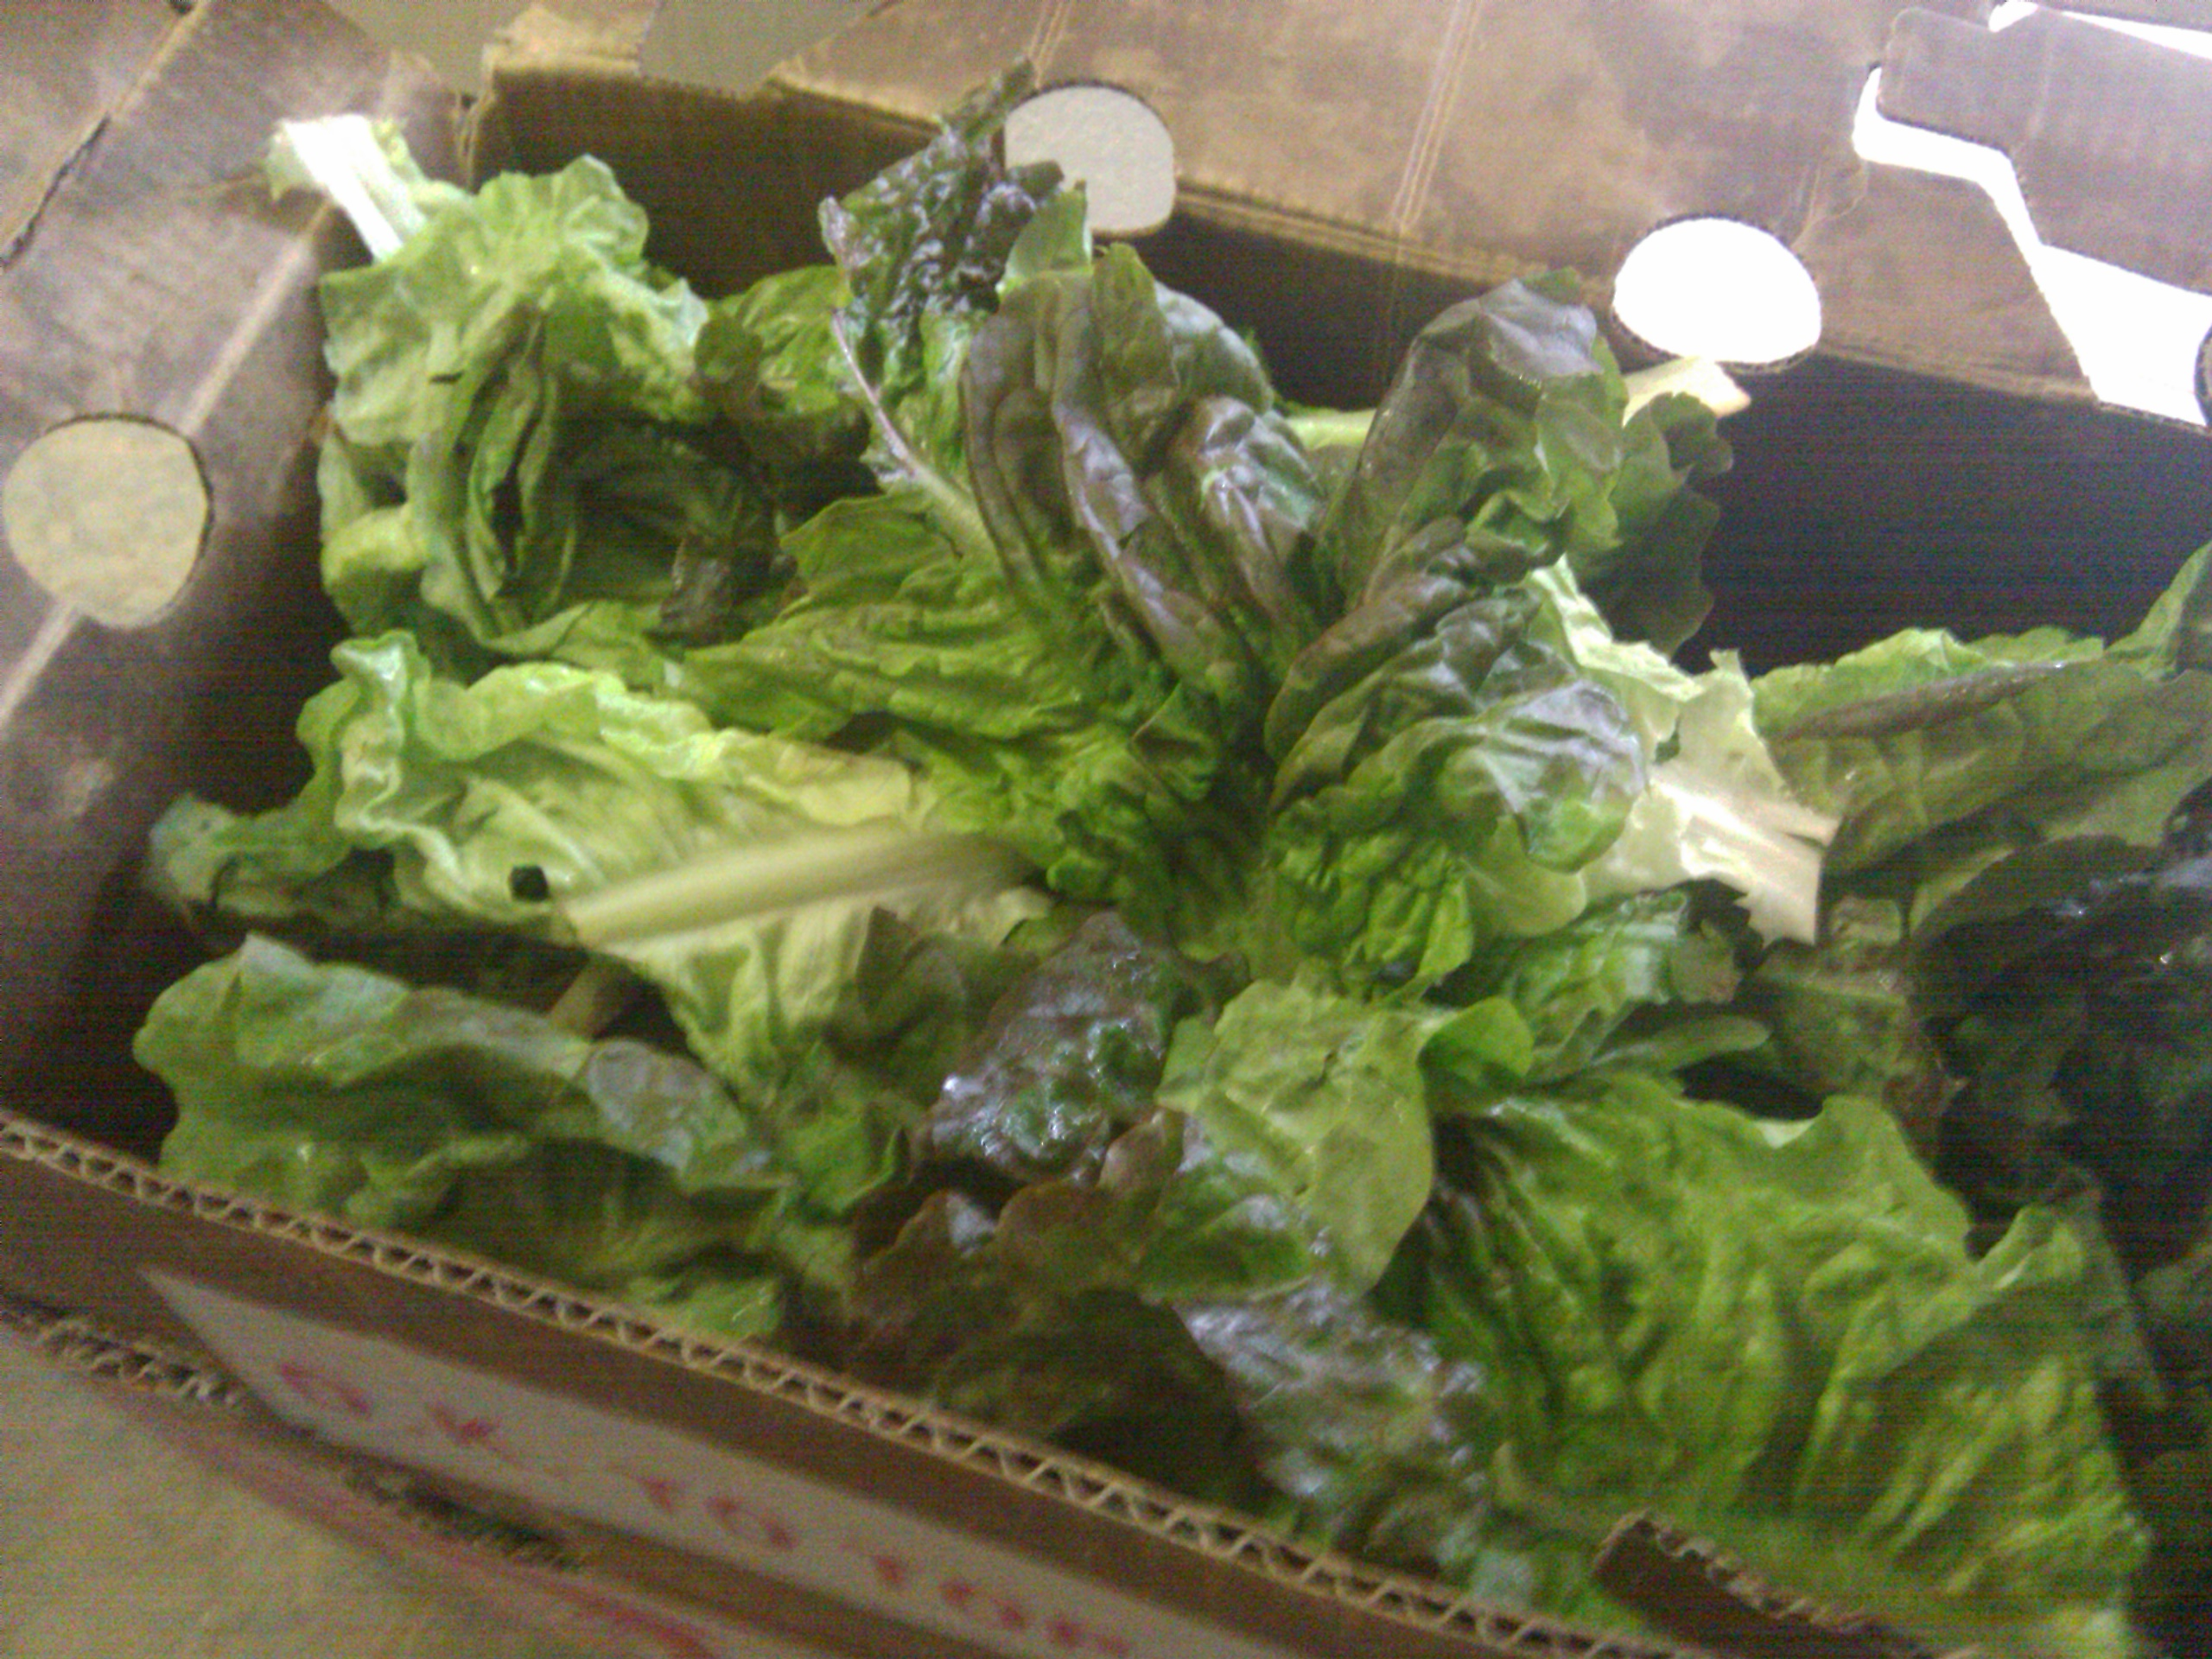 Lettuce waste from local market bound for compost or garbage